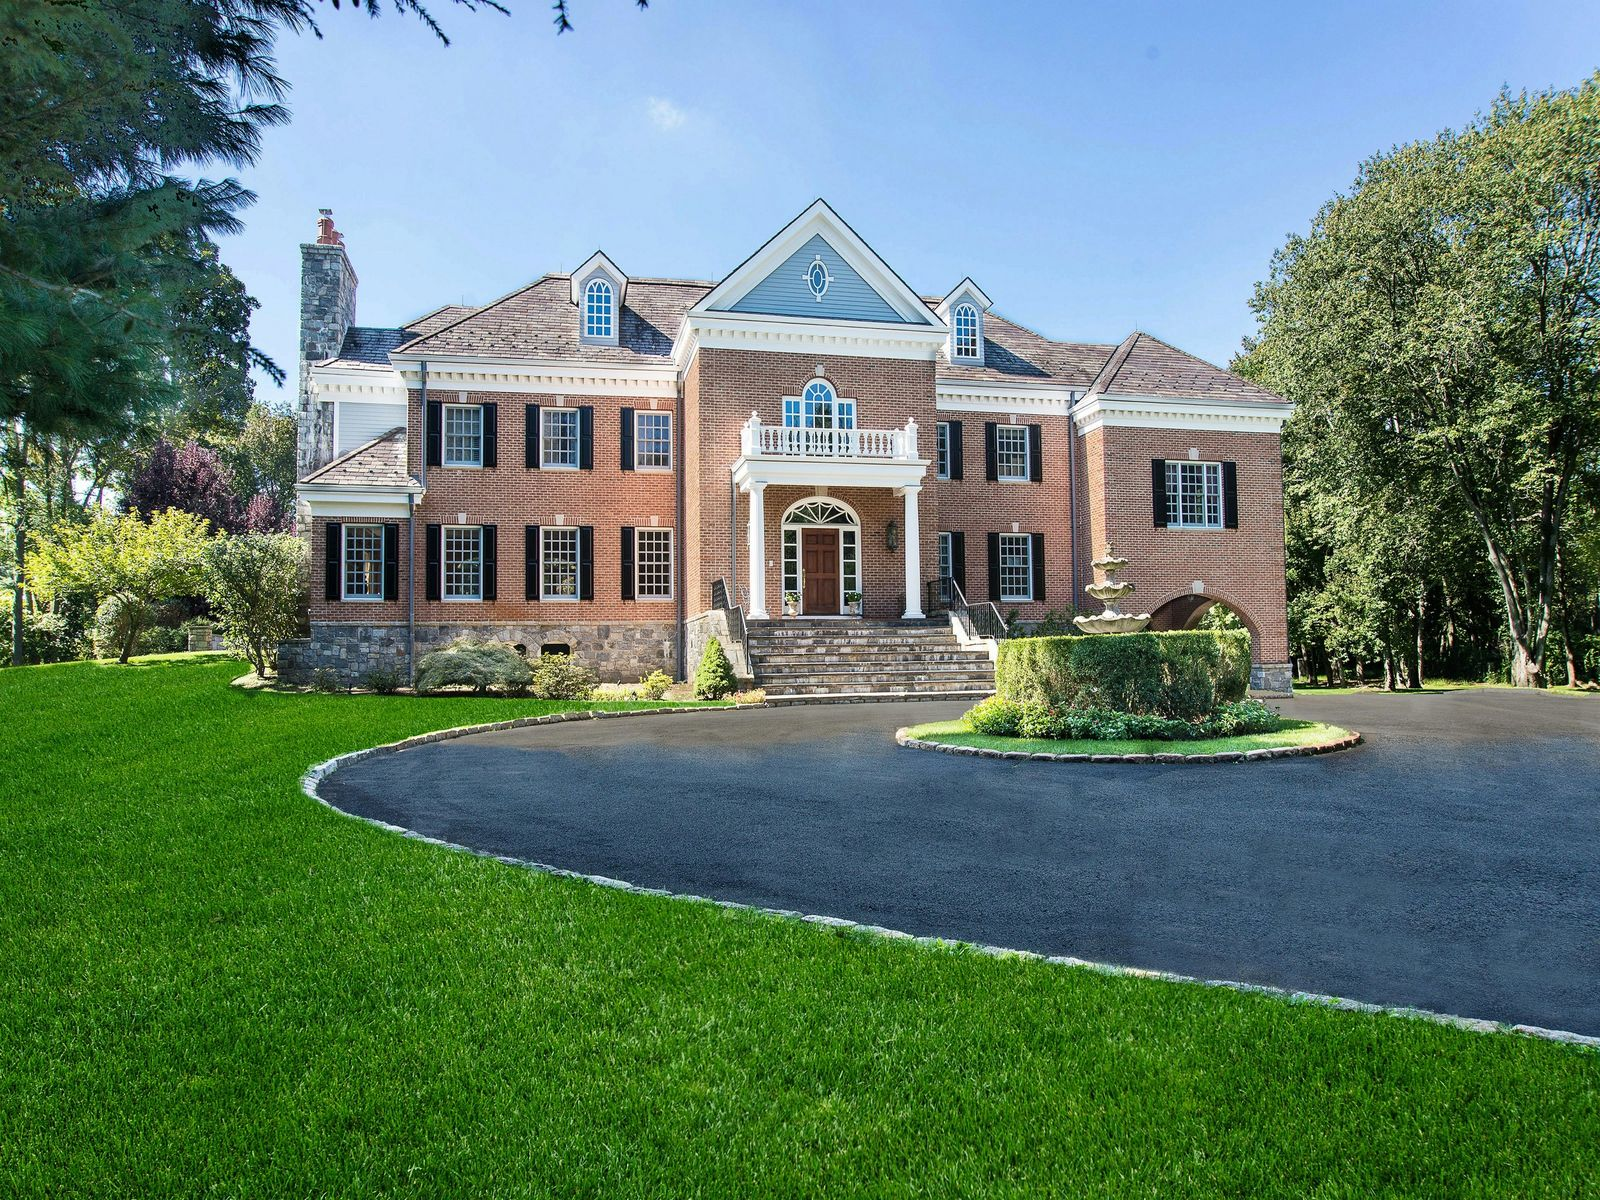 Deerfield Manor, Greenwich CT Single Family Home - Greenwich Real Estate